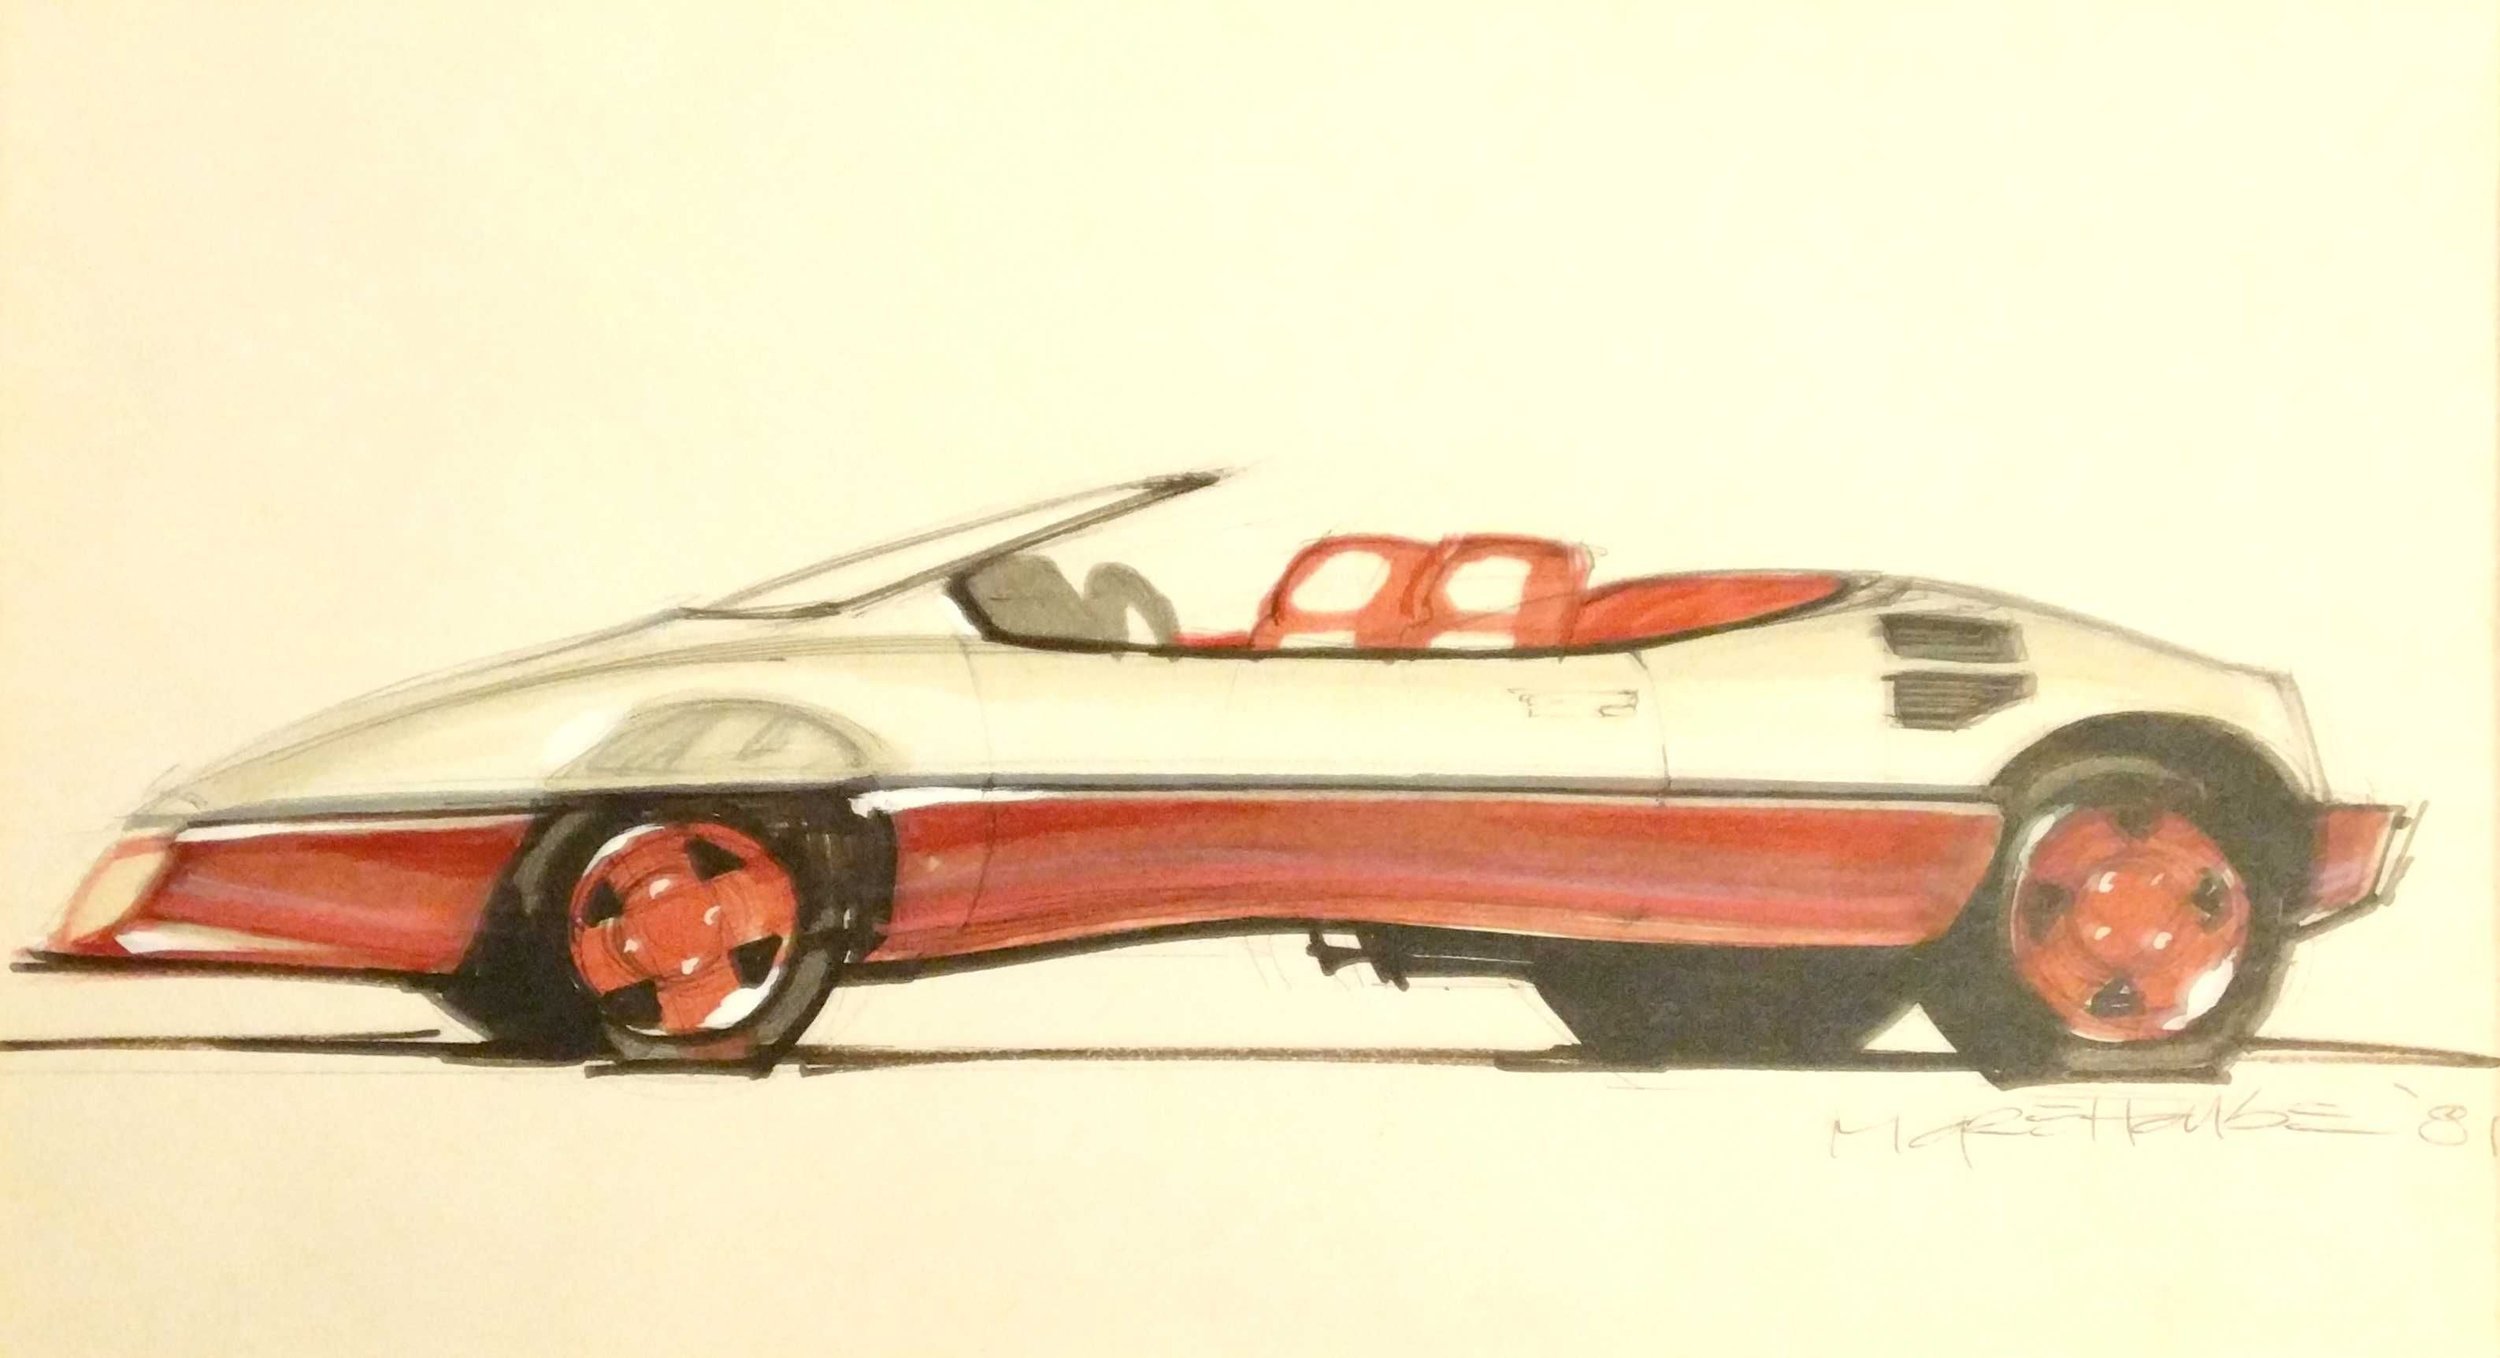 Matchbox car marker rendering by Mr. Morehouse, 1981